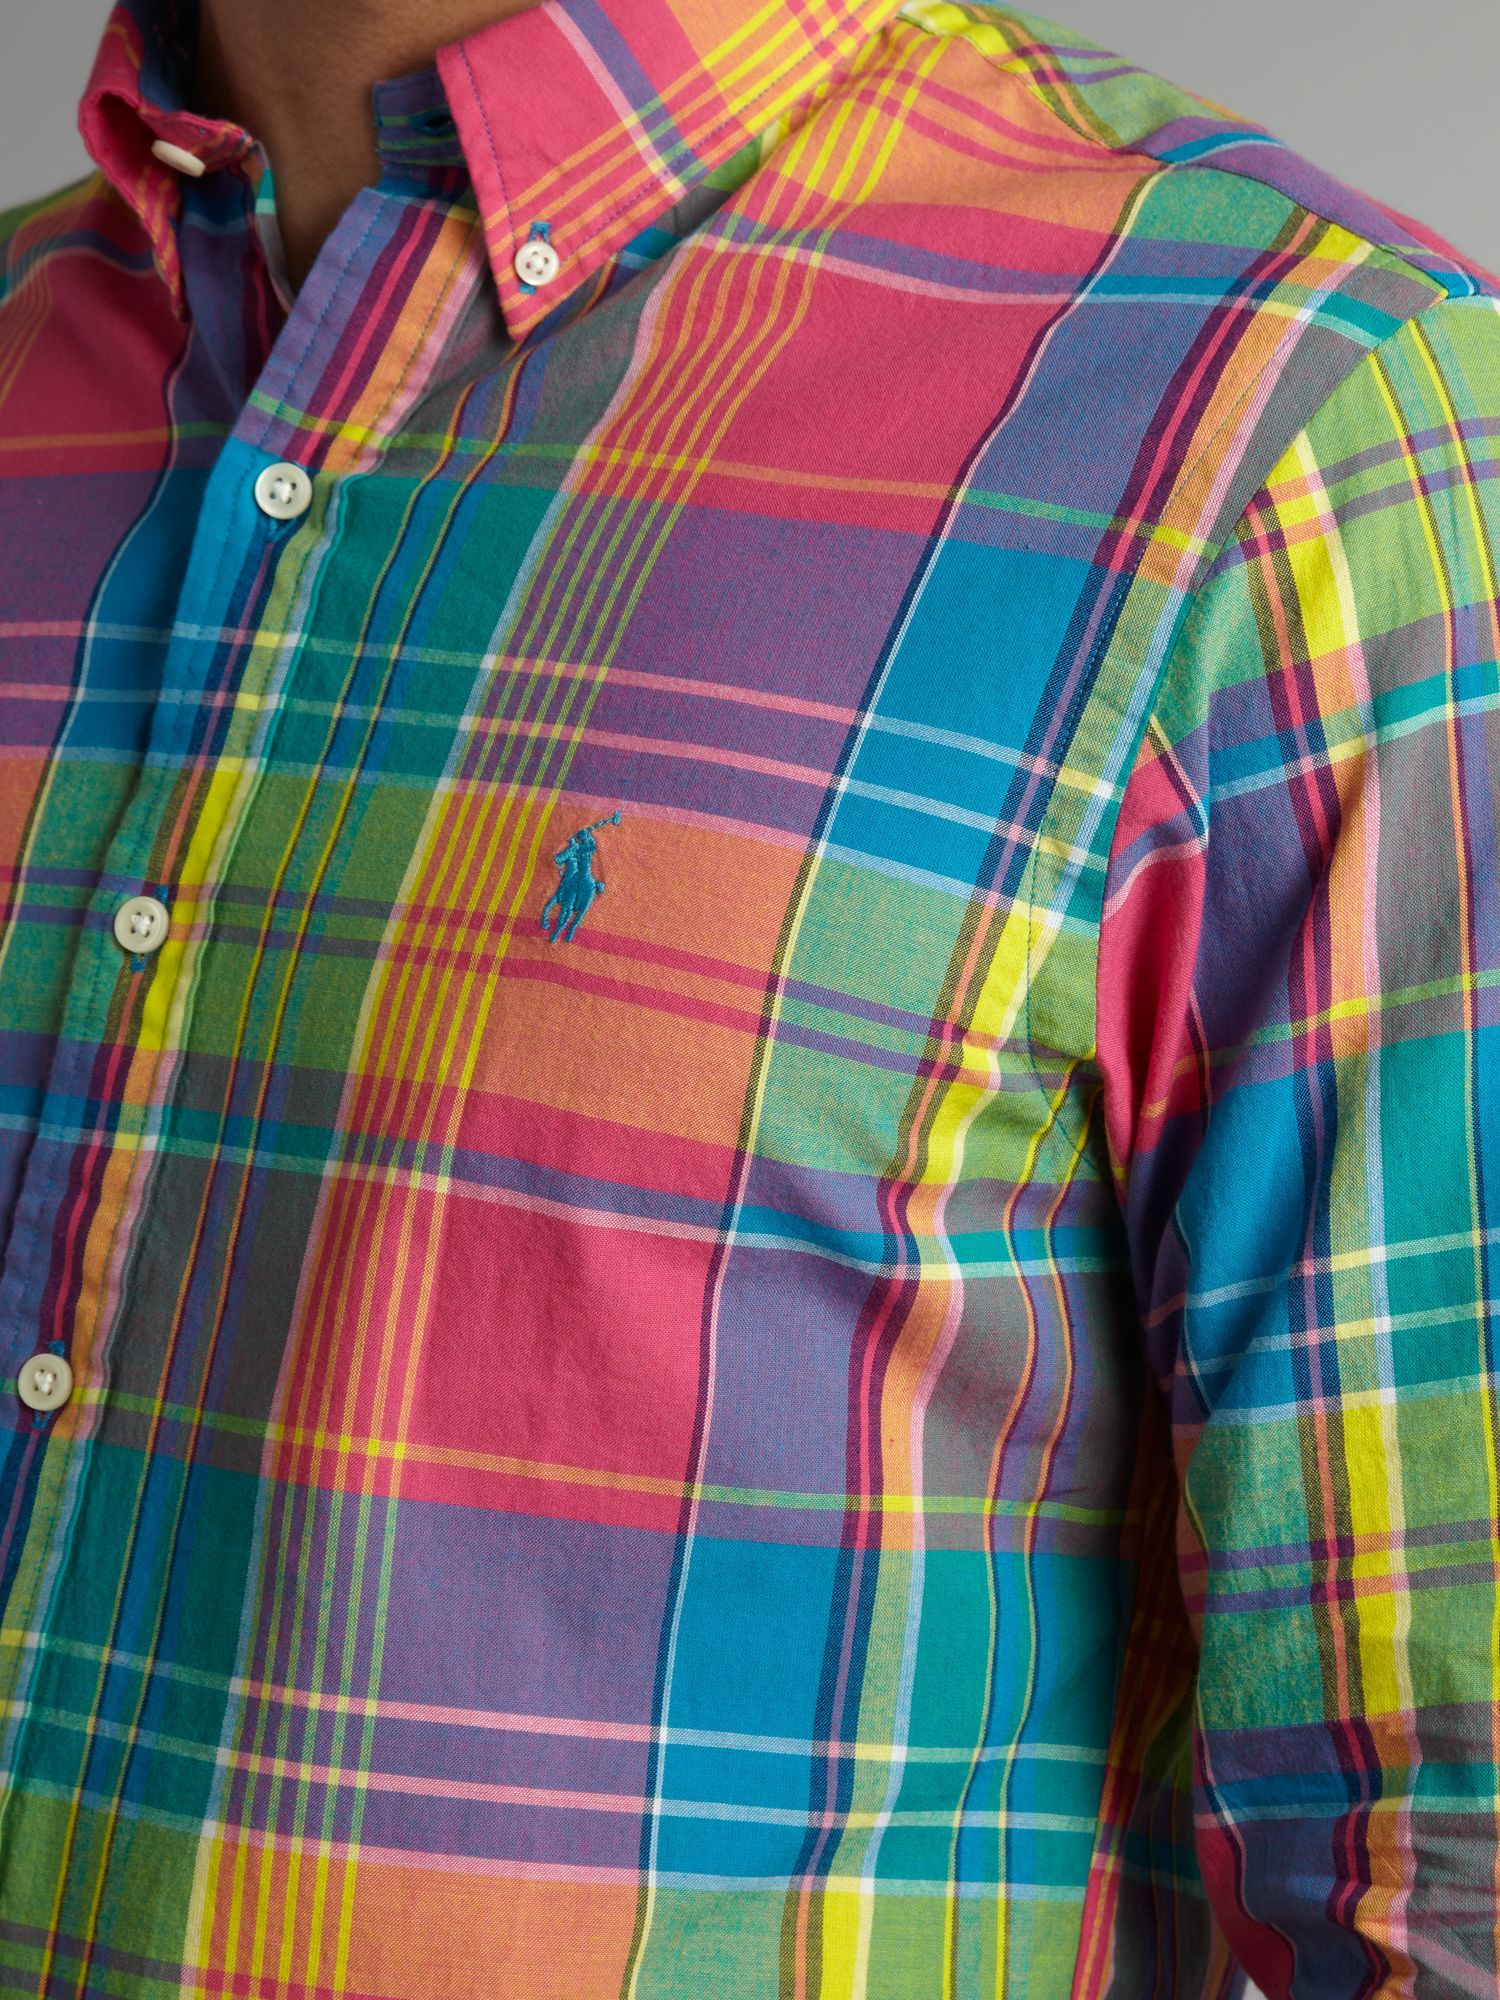 Polo ralph lauren Slim Fit Bright Plaid Shirt in Multicolor for ... 44096cd0c57